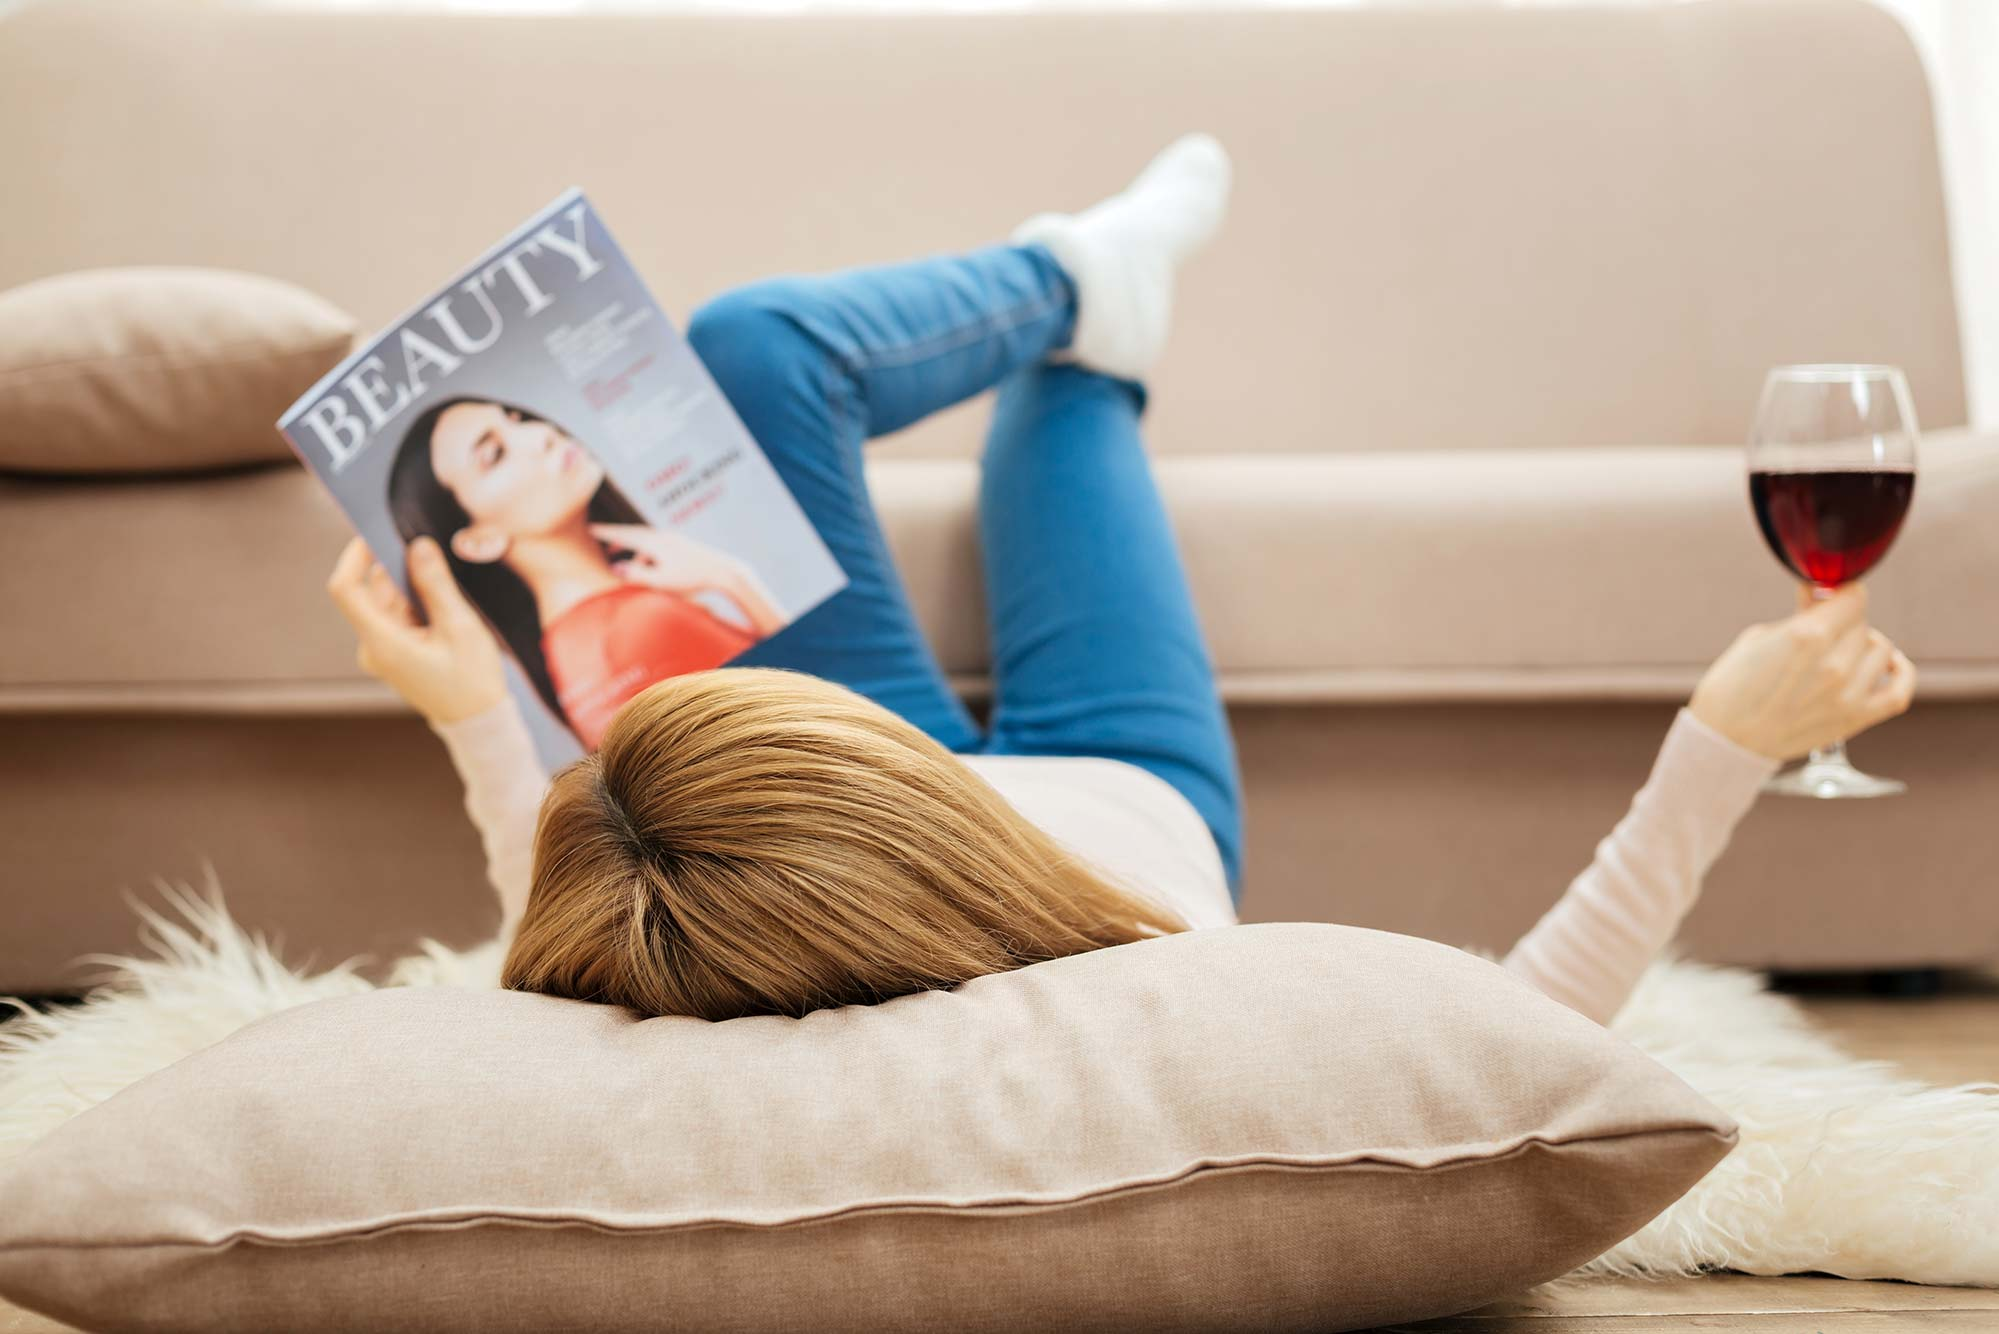 Woman relaxing with wine and a magazine